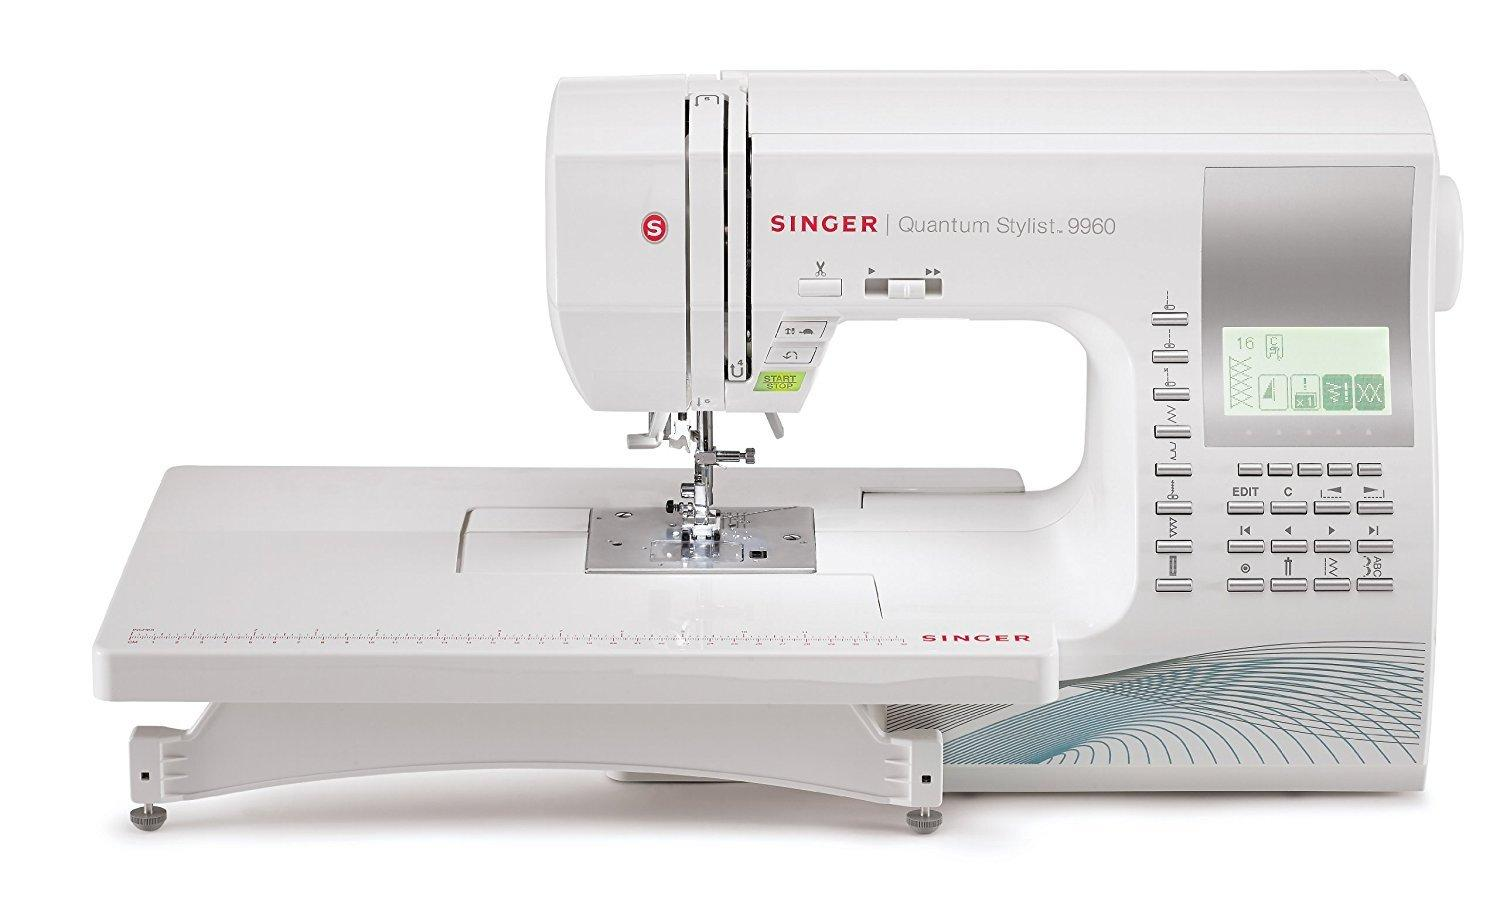 Singer Quantum Stylist compact sewing machine